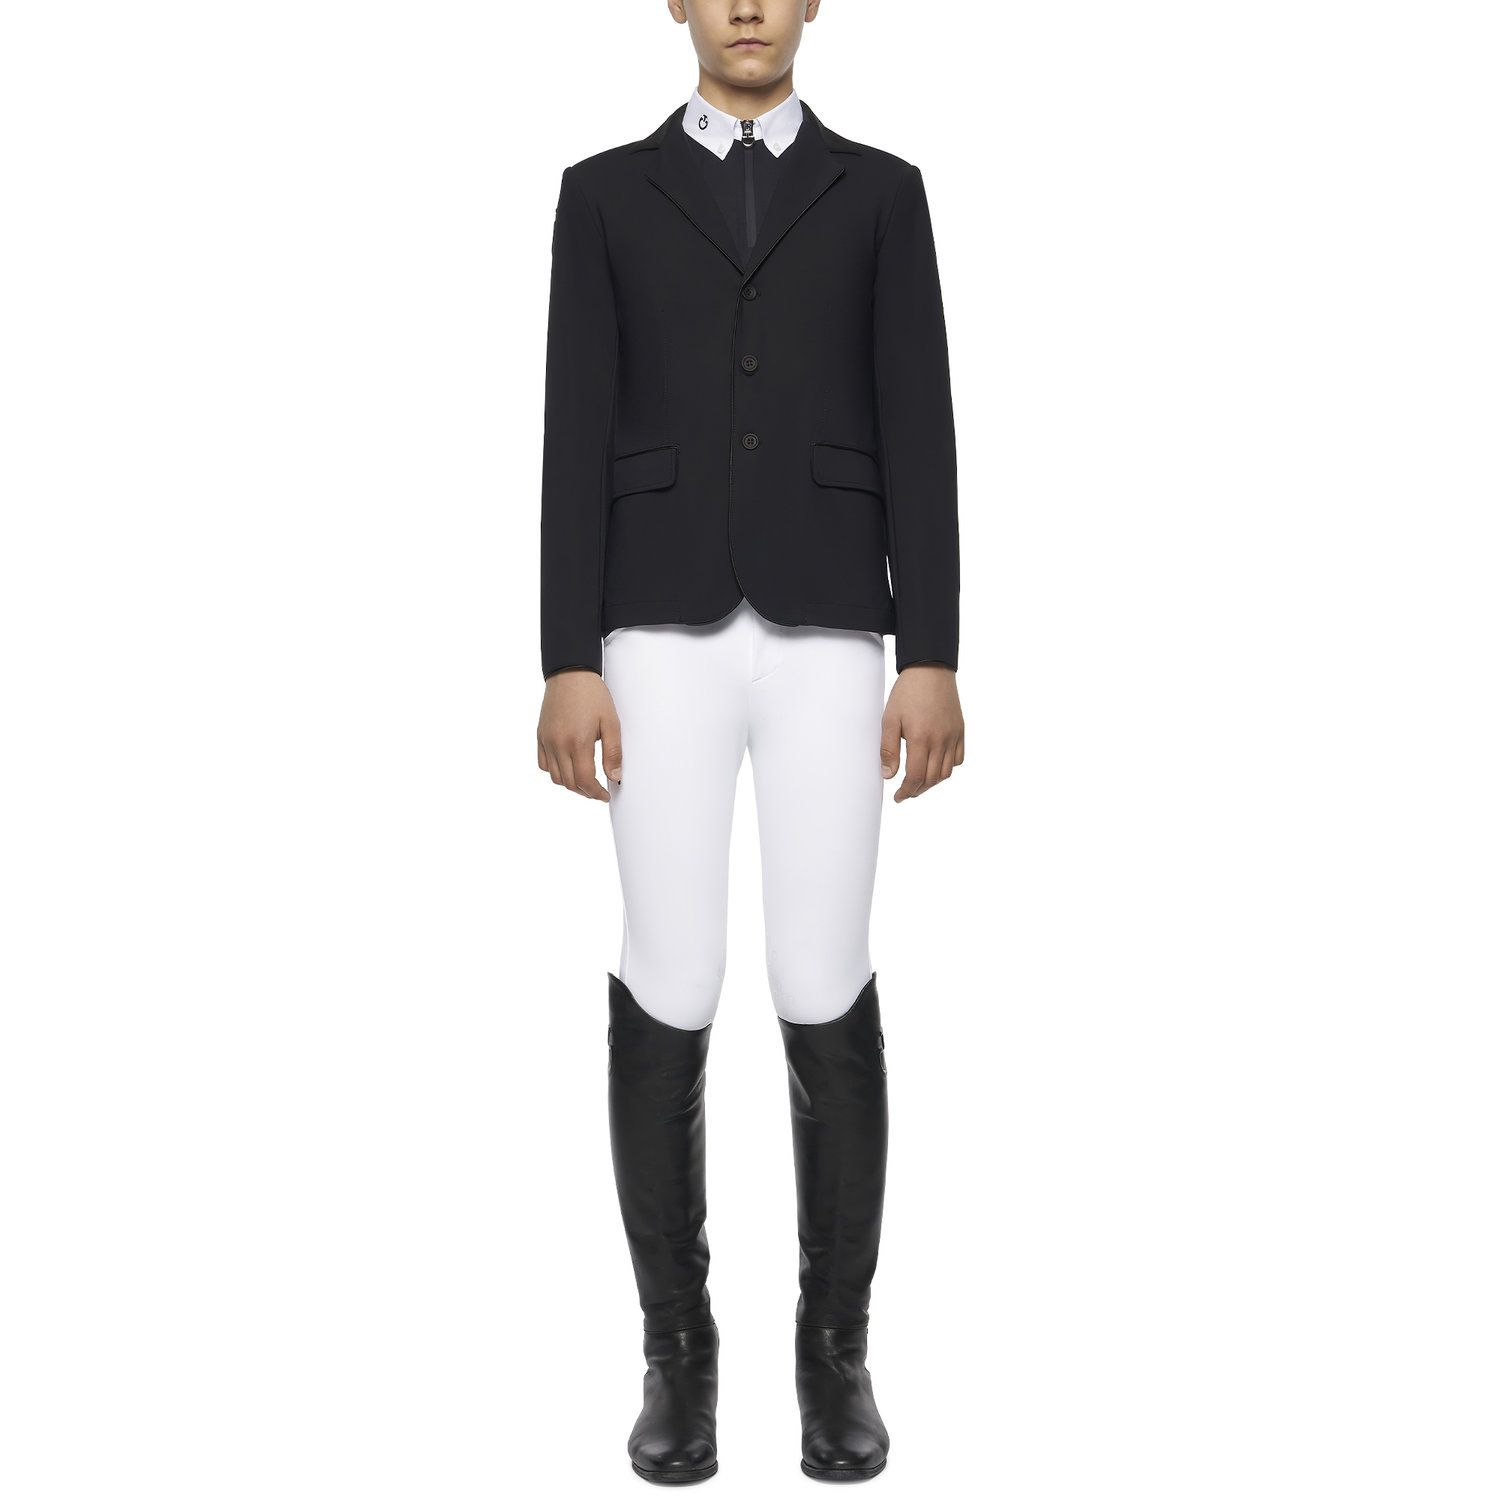 Boy's competition riding jacket.